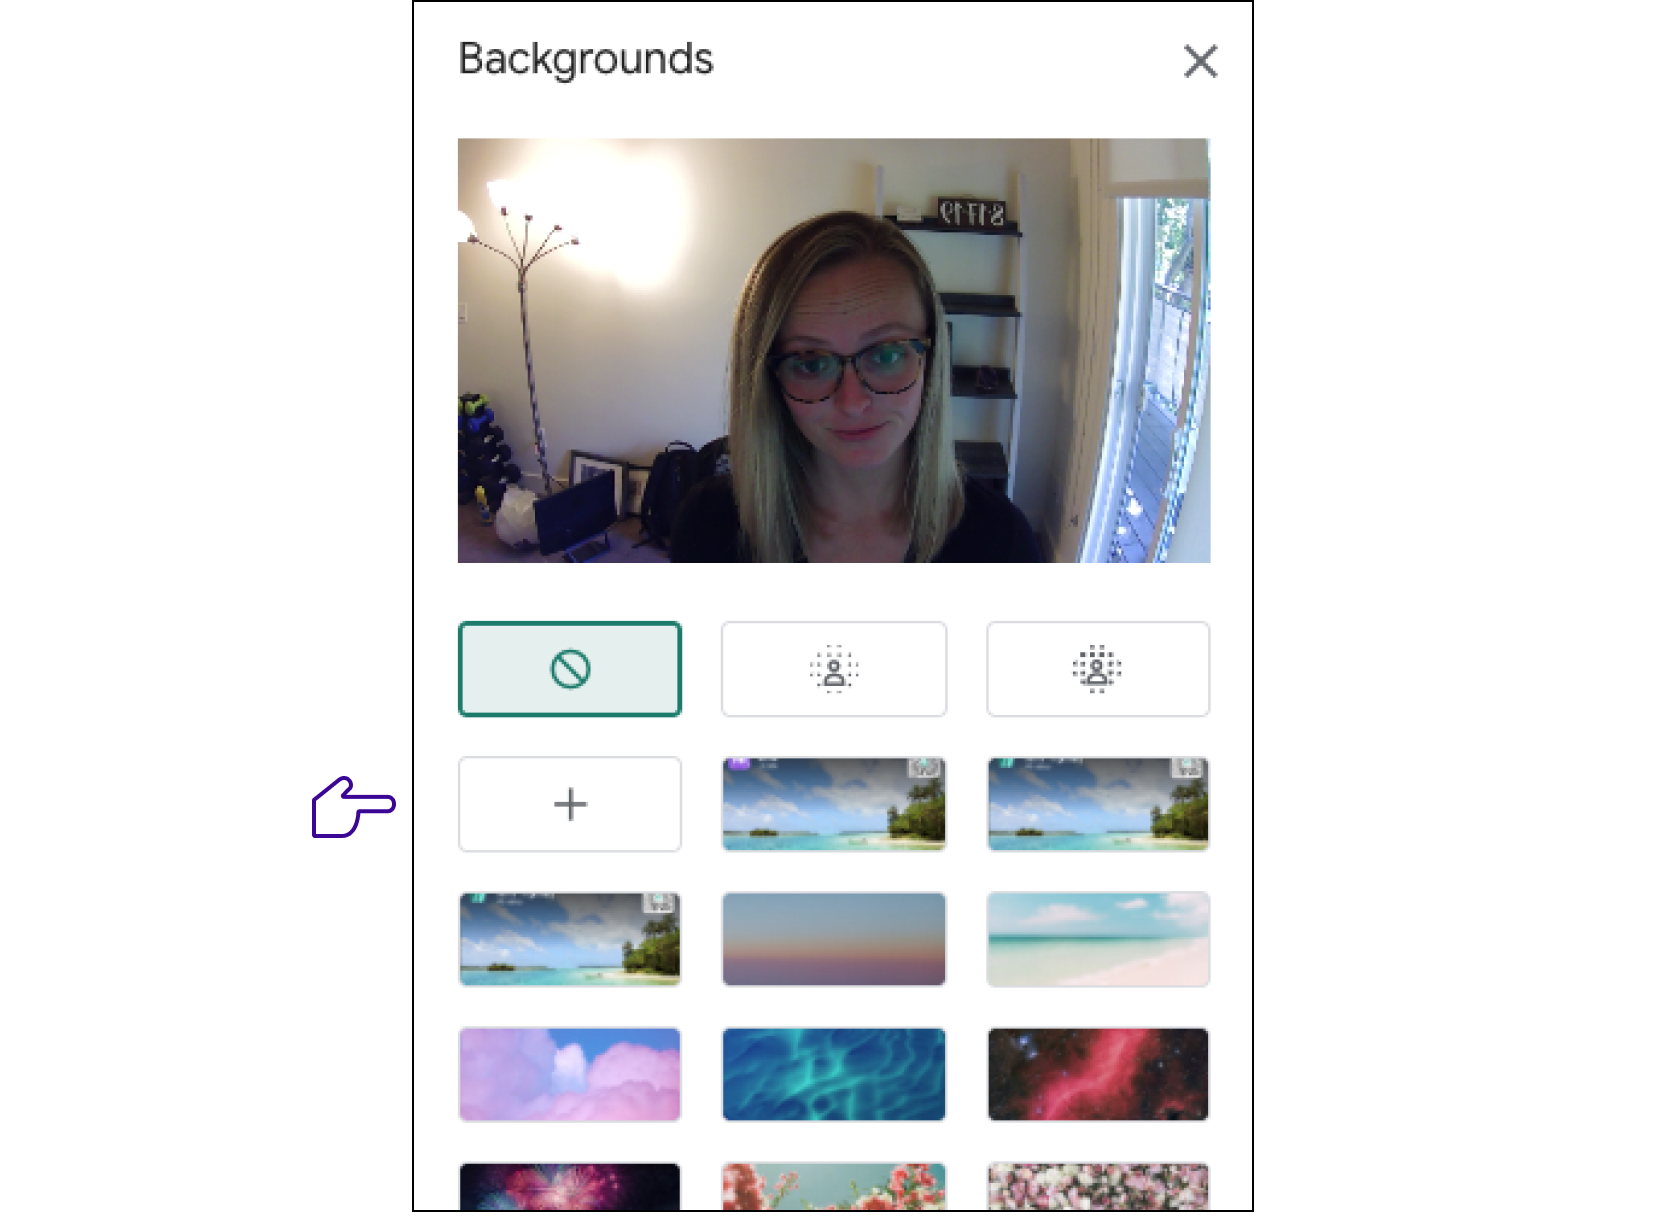 Click the plus sign to upload a virtual background to Google Meet